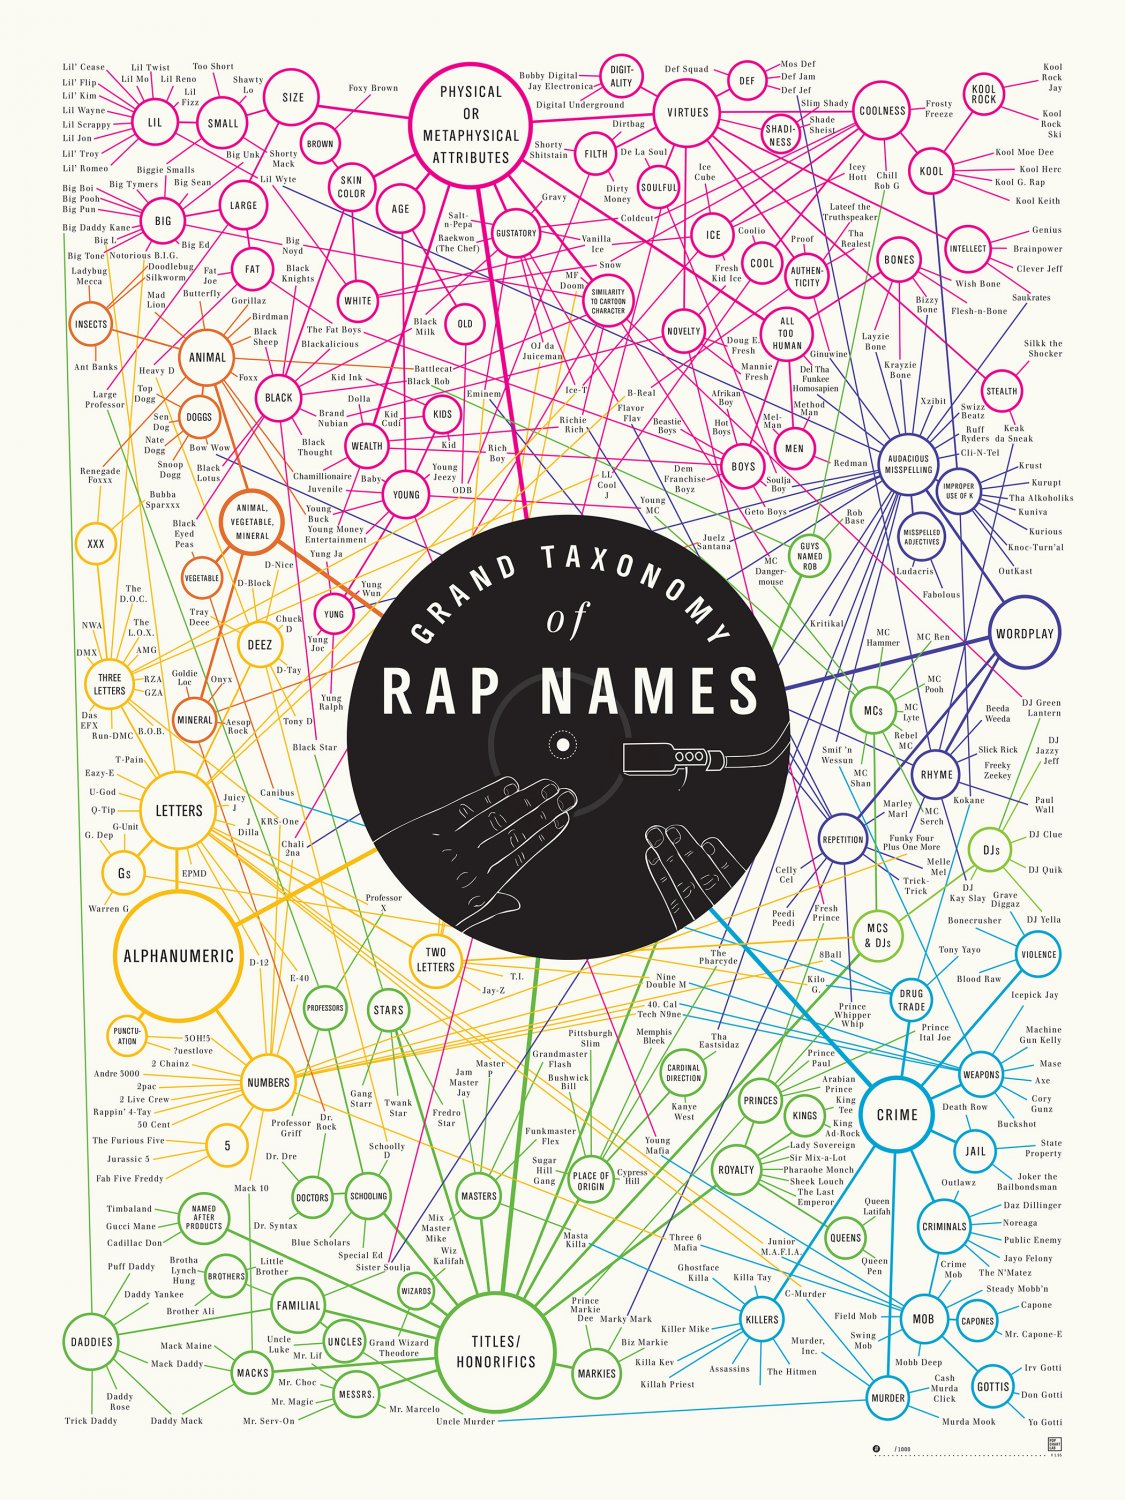 Grand Taxonomy of Rap Names Chart   18x28 inches Canvas Print